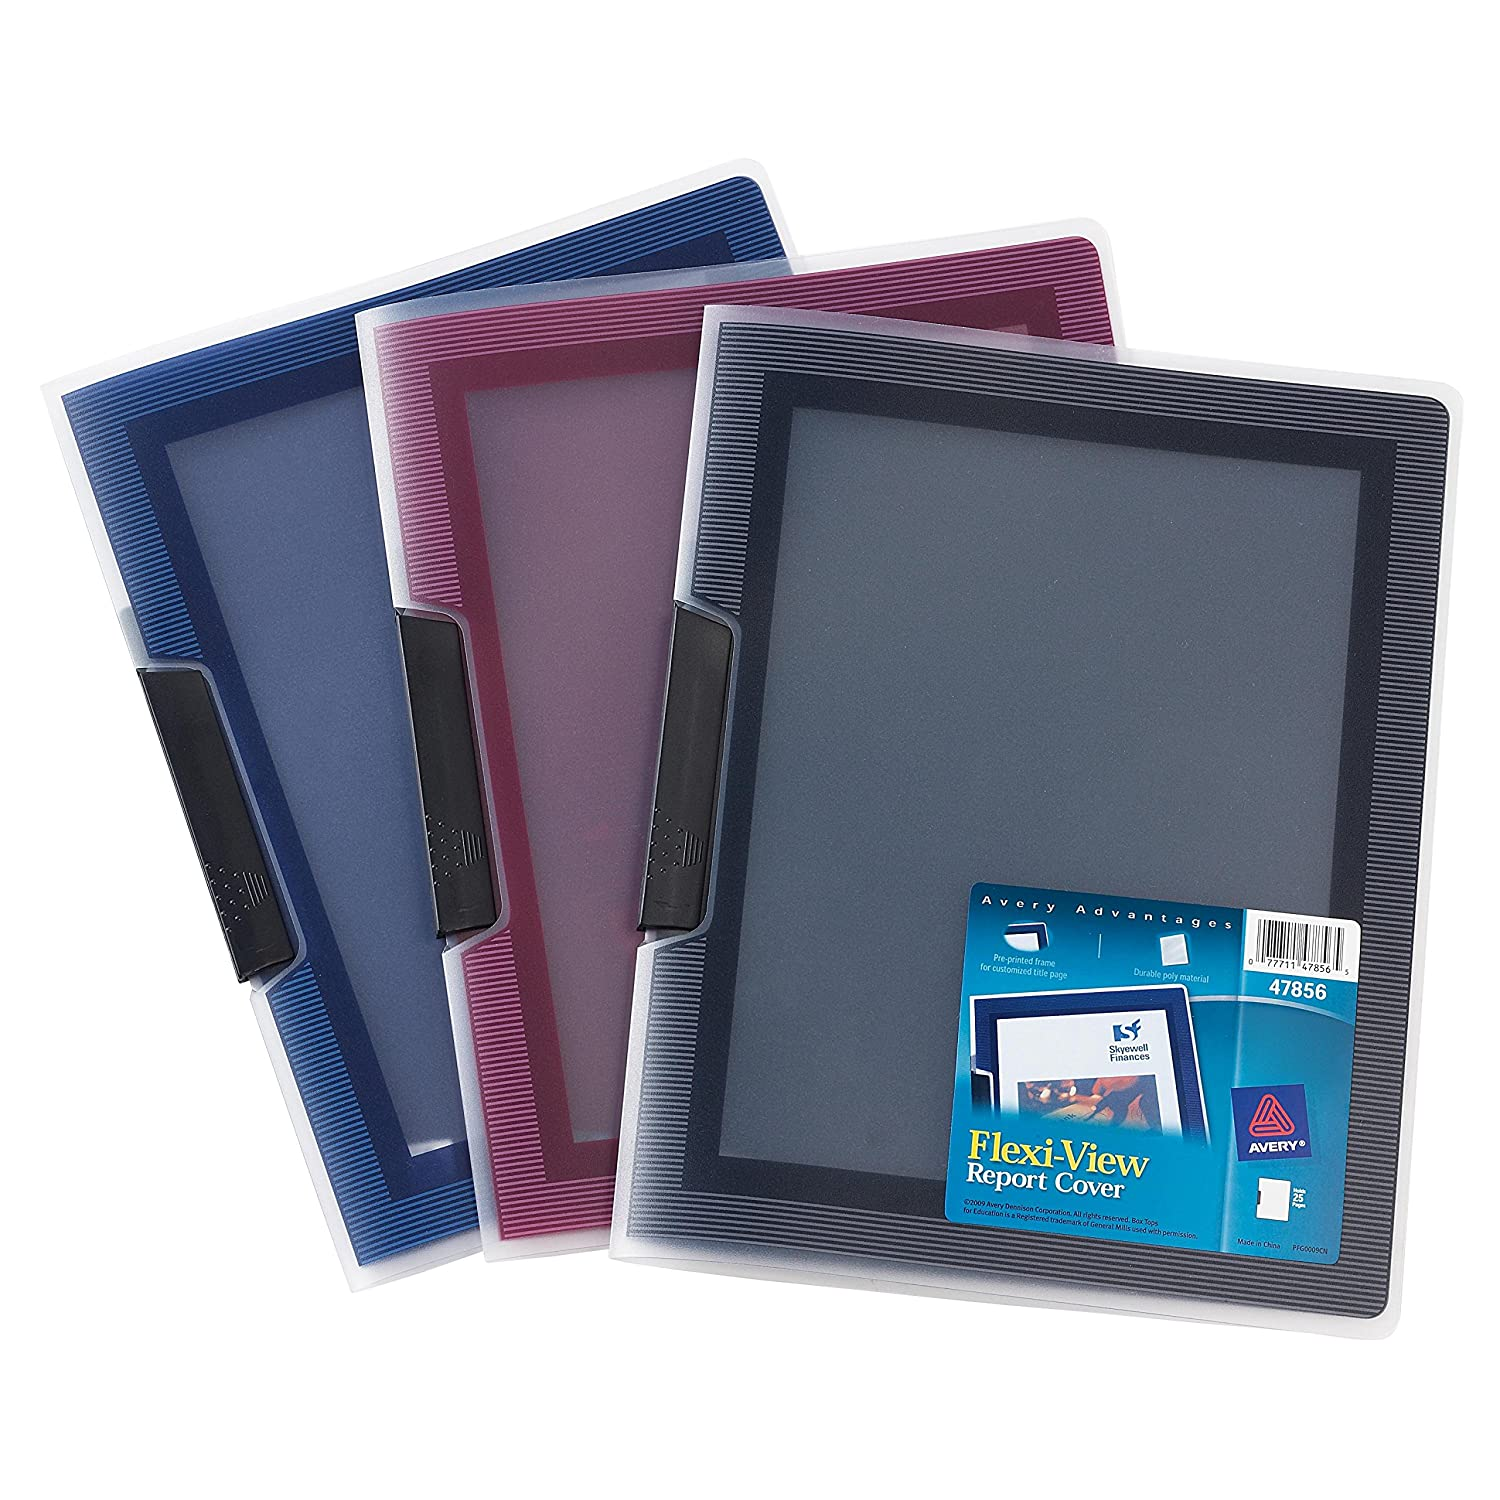 Avery Flexi-View Report Cover 47856 Color May Vary Assorted Colors 1 Cover